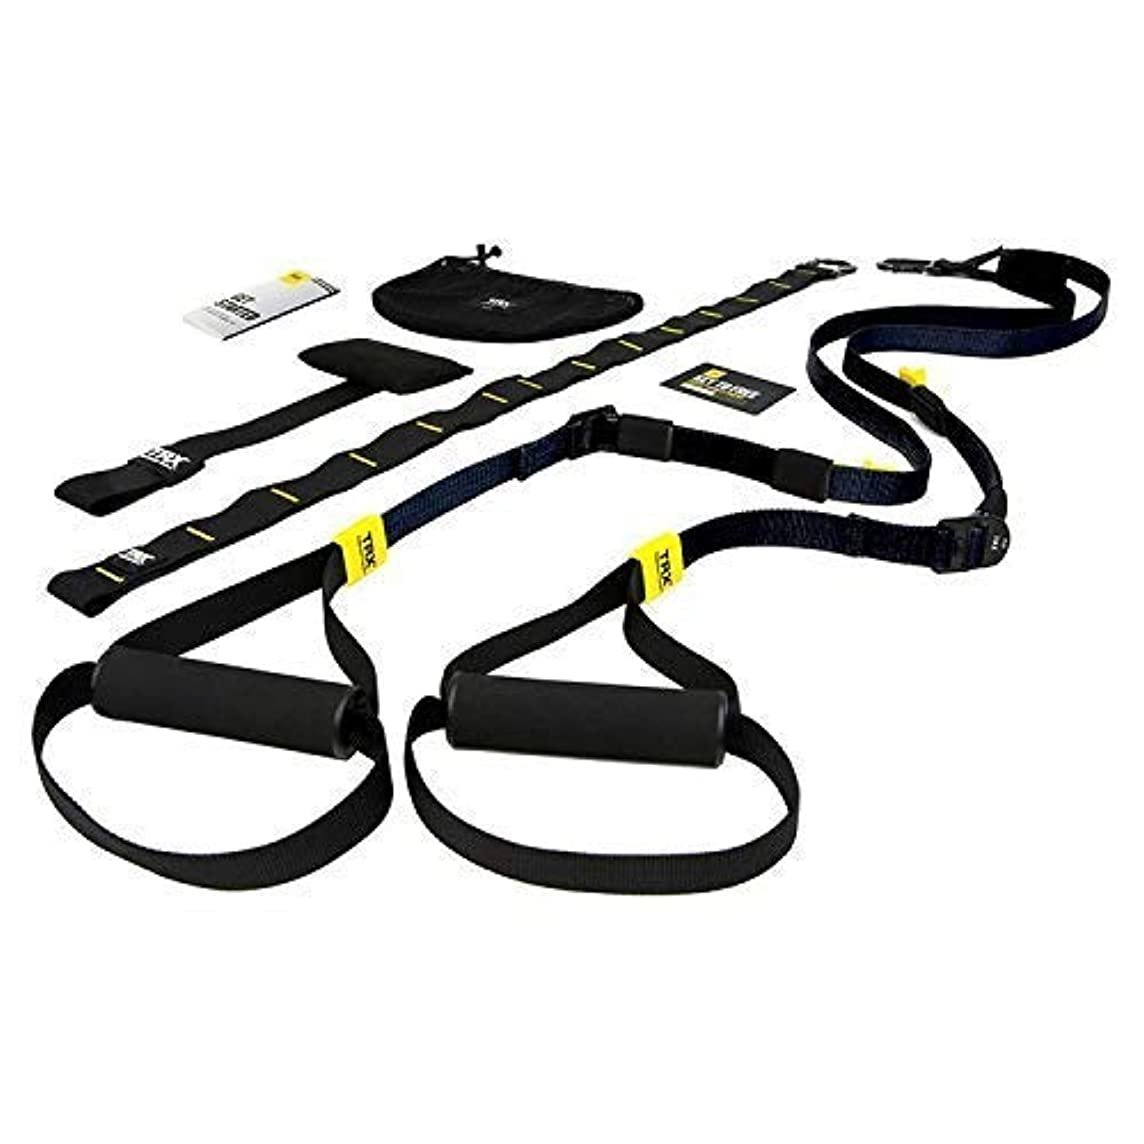 TRX GO Suspension Training: Bodyweight Fitness Resistance Training | Fitness for All Levels & All Goals for Total Body Workouts for Home & Travel | Lightweight & Portable | Worko